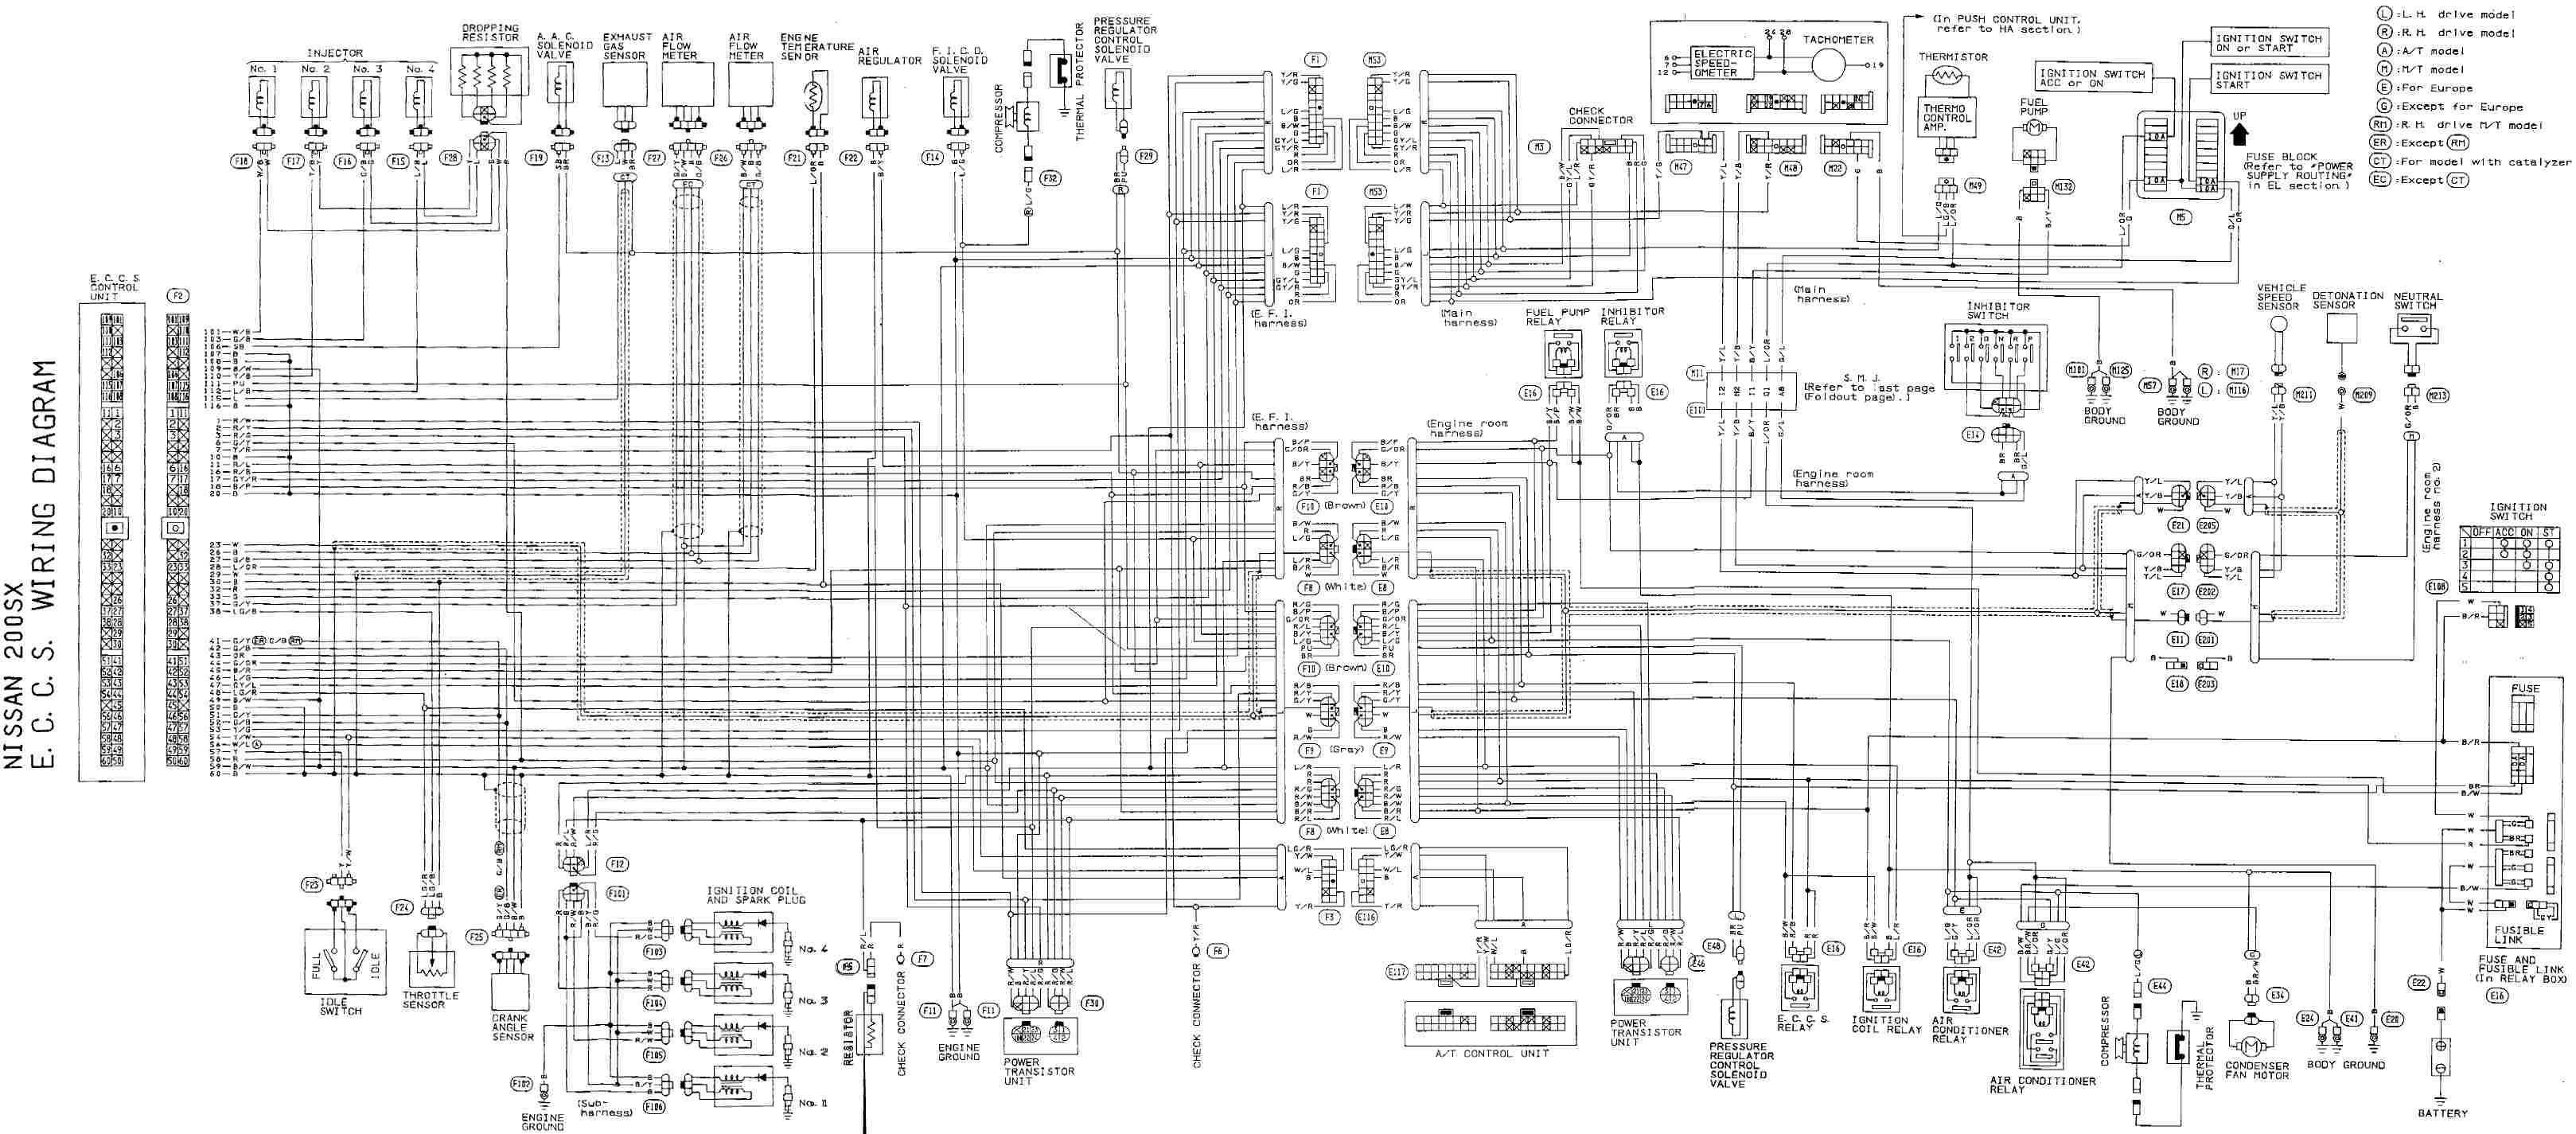 [JZHR_22] Range Rivers Ecu Pinout Diagrams GET Pinout